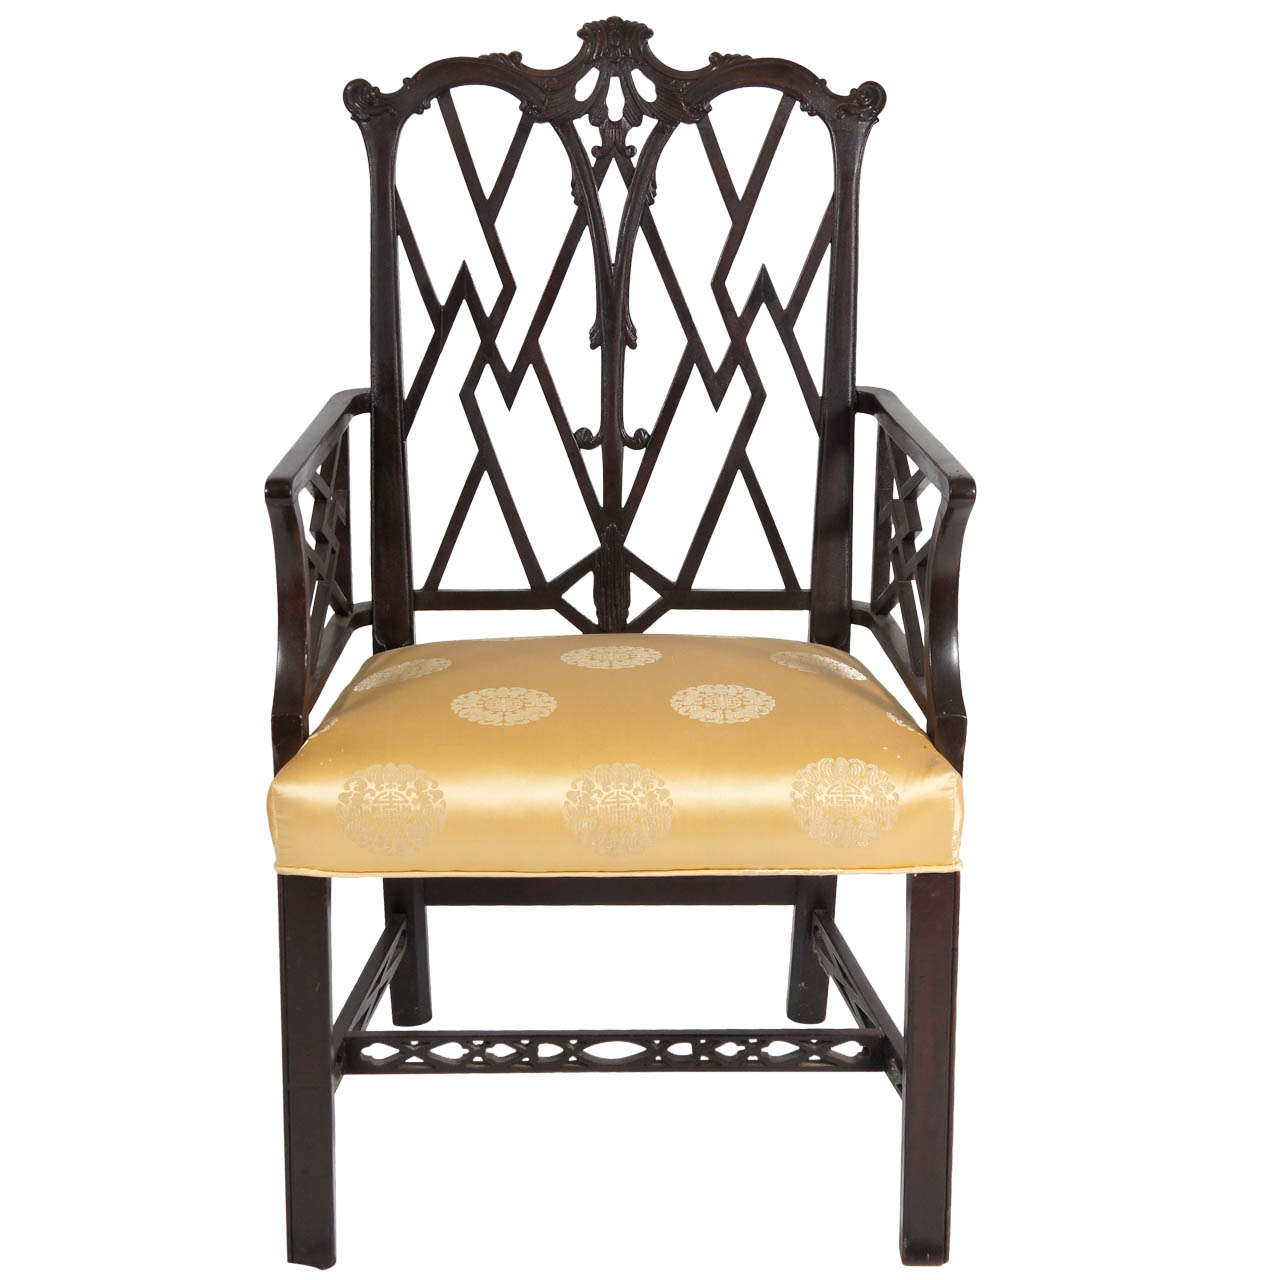 Chippendale Furniture: Chinese Chippendale-Style Arm Chair For Sale At 1stdibs